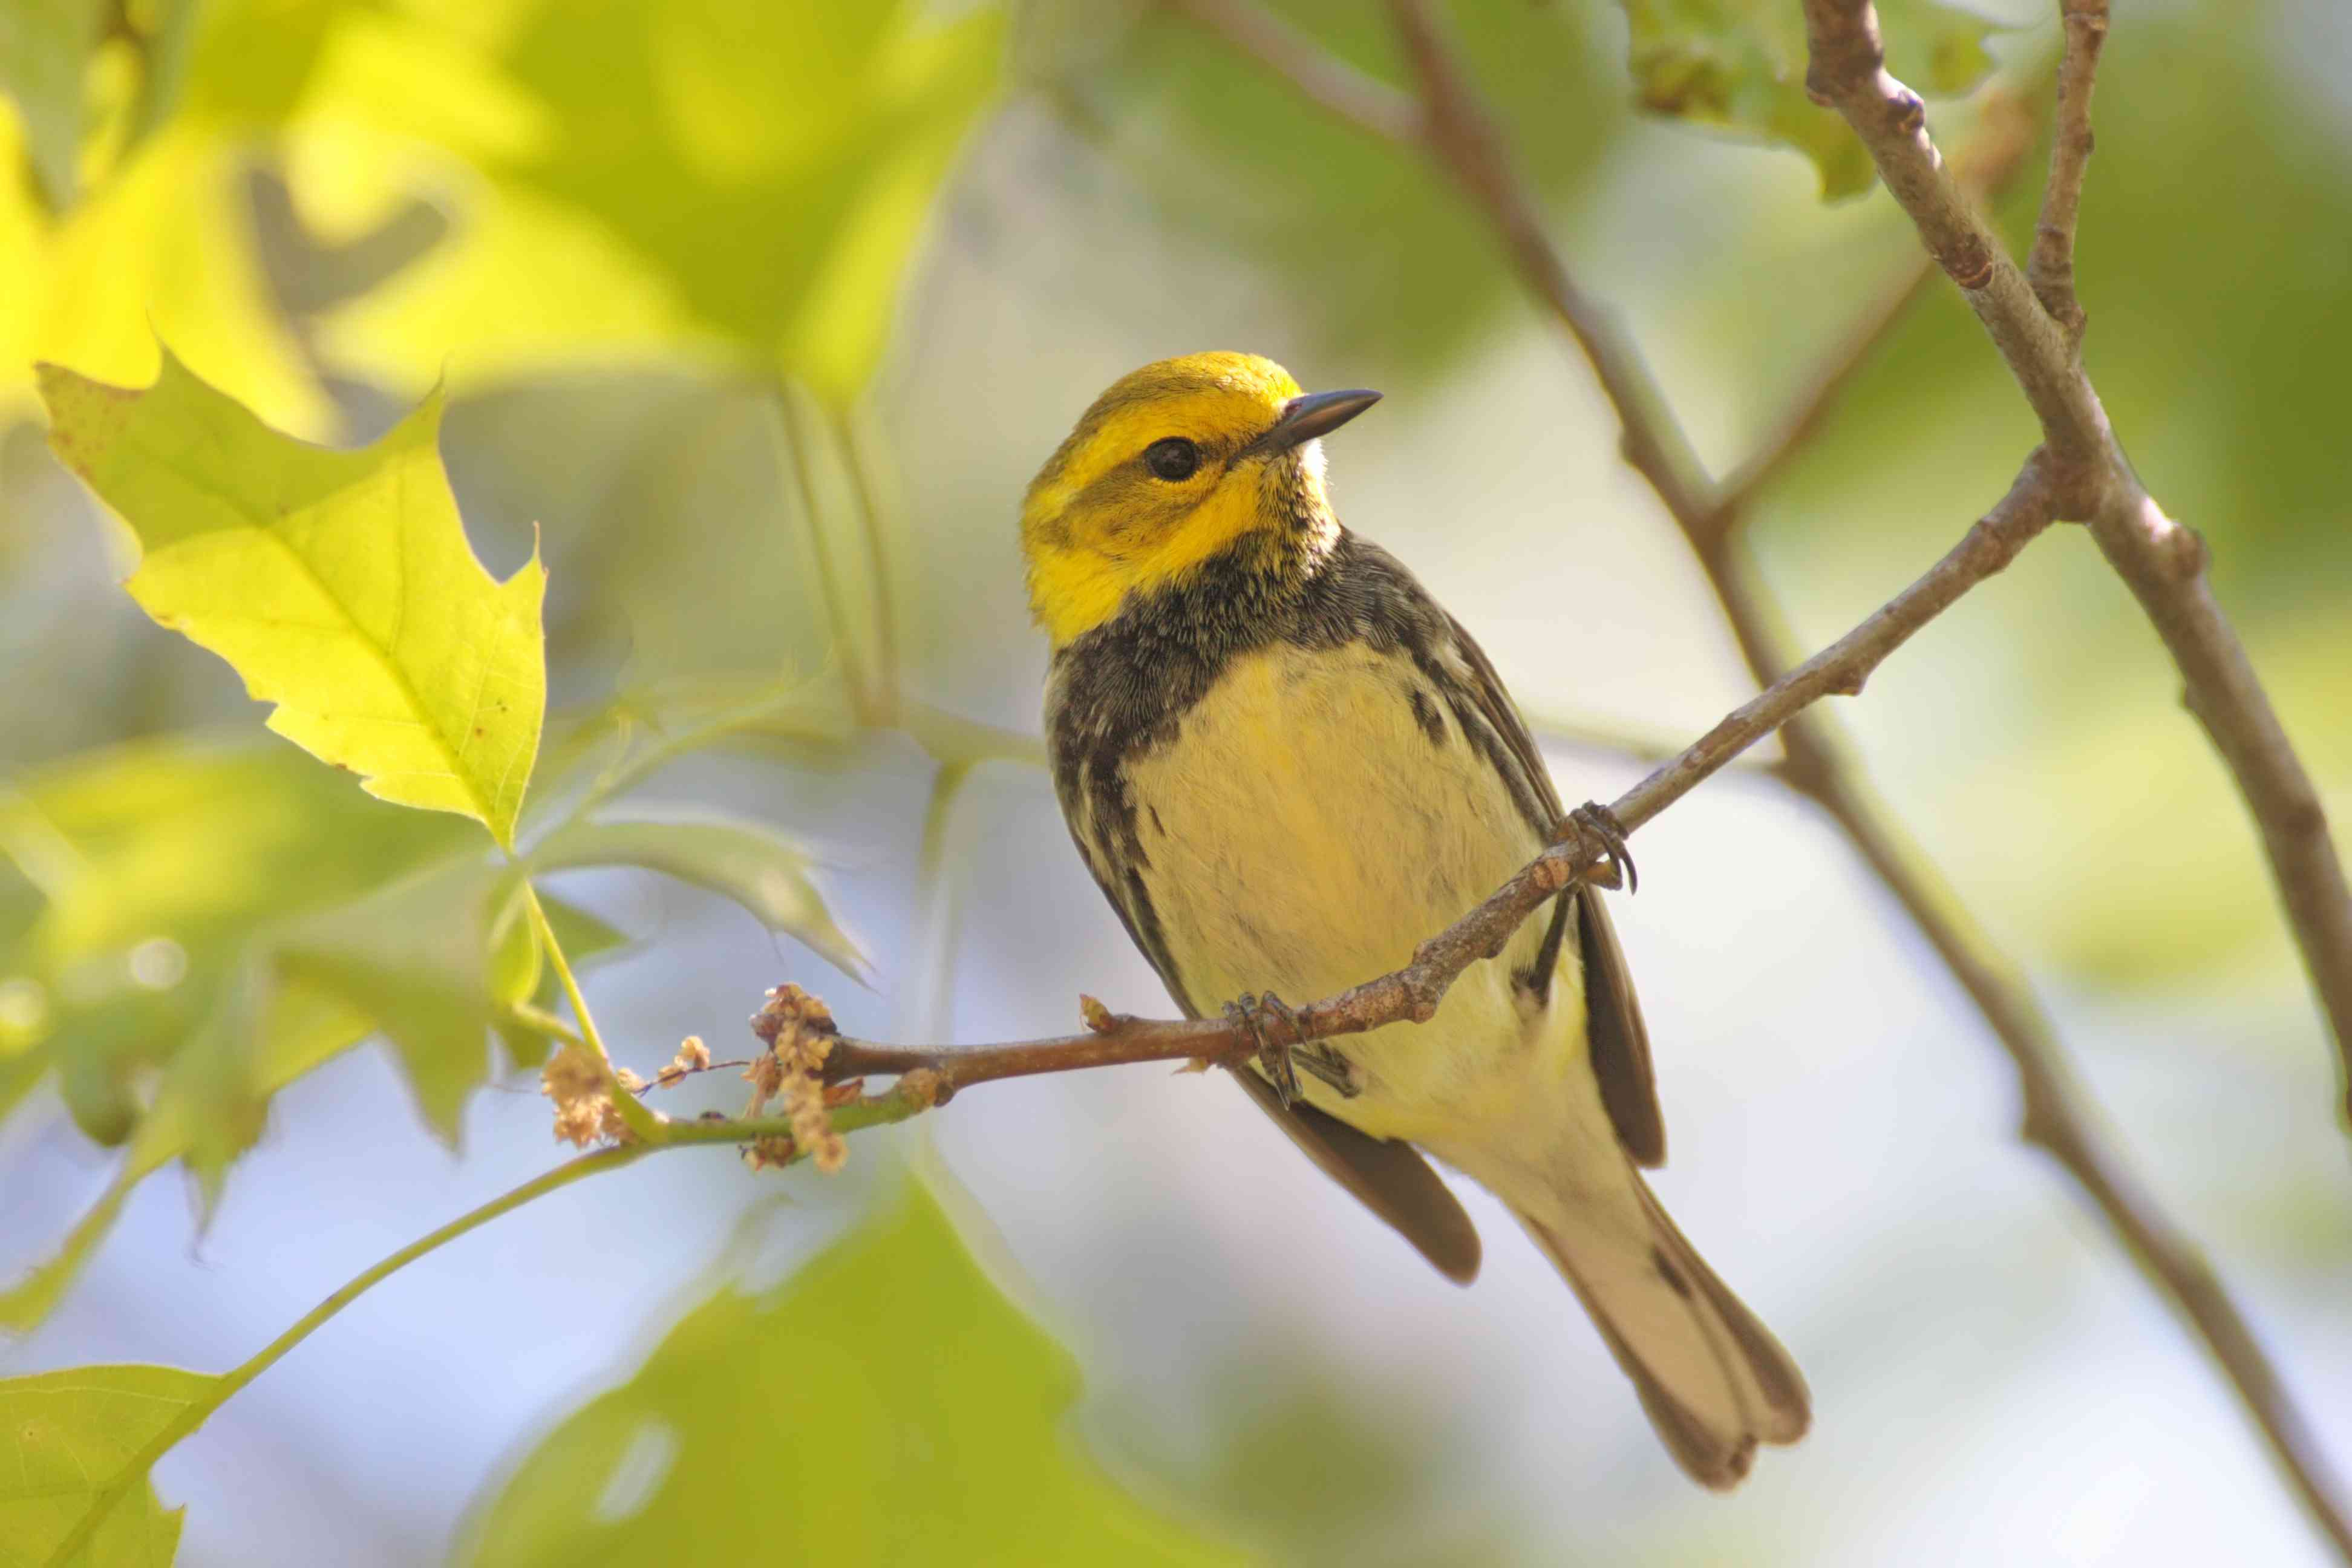 Black-throated green warbler on branch surrounded by leaves